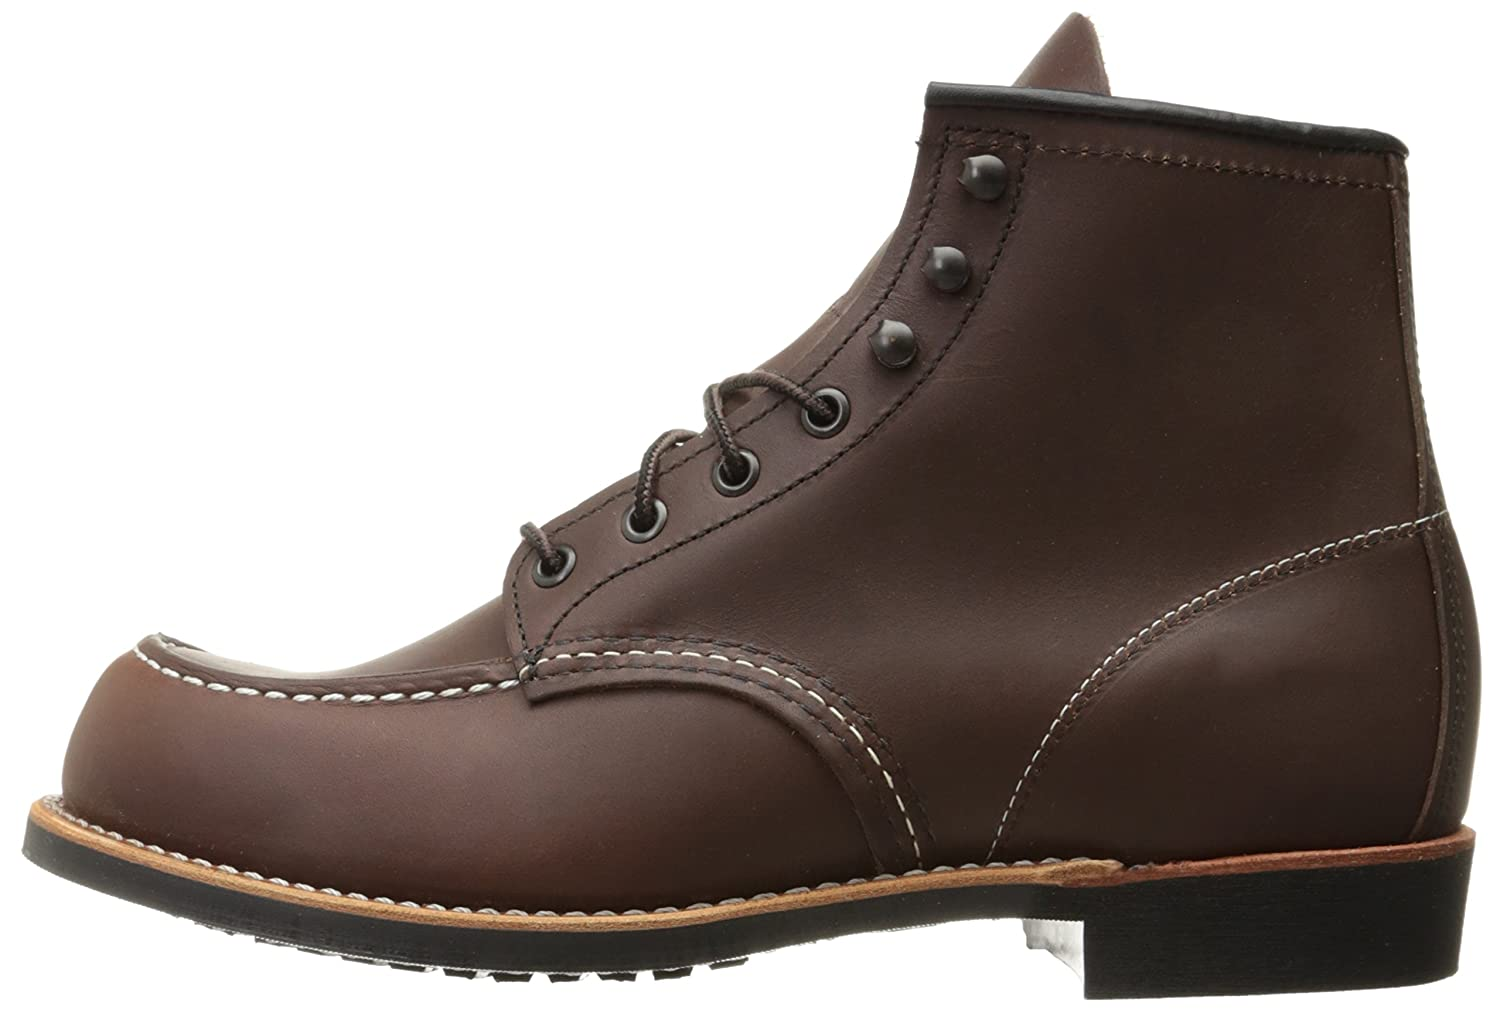 Arranque De Red Wing Cooper Para Hombres UK8.5 EU42.5 US9.5 Amber Portage